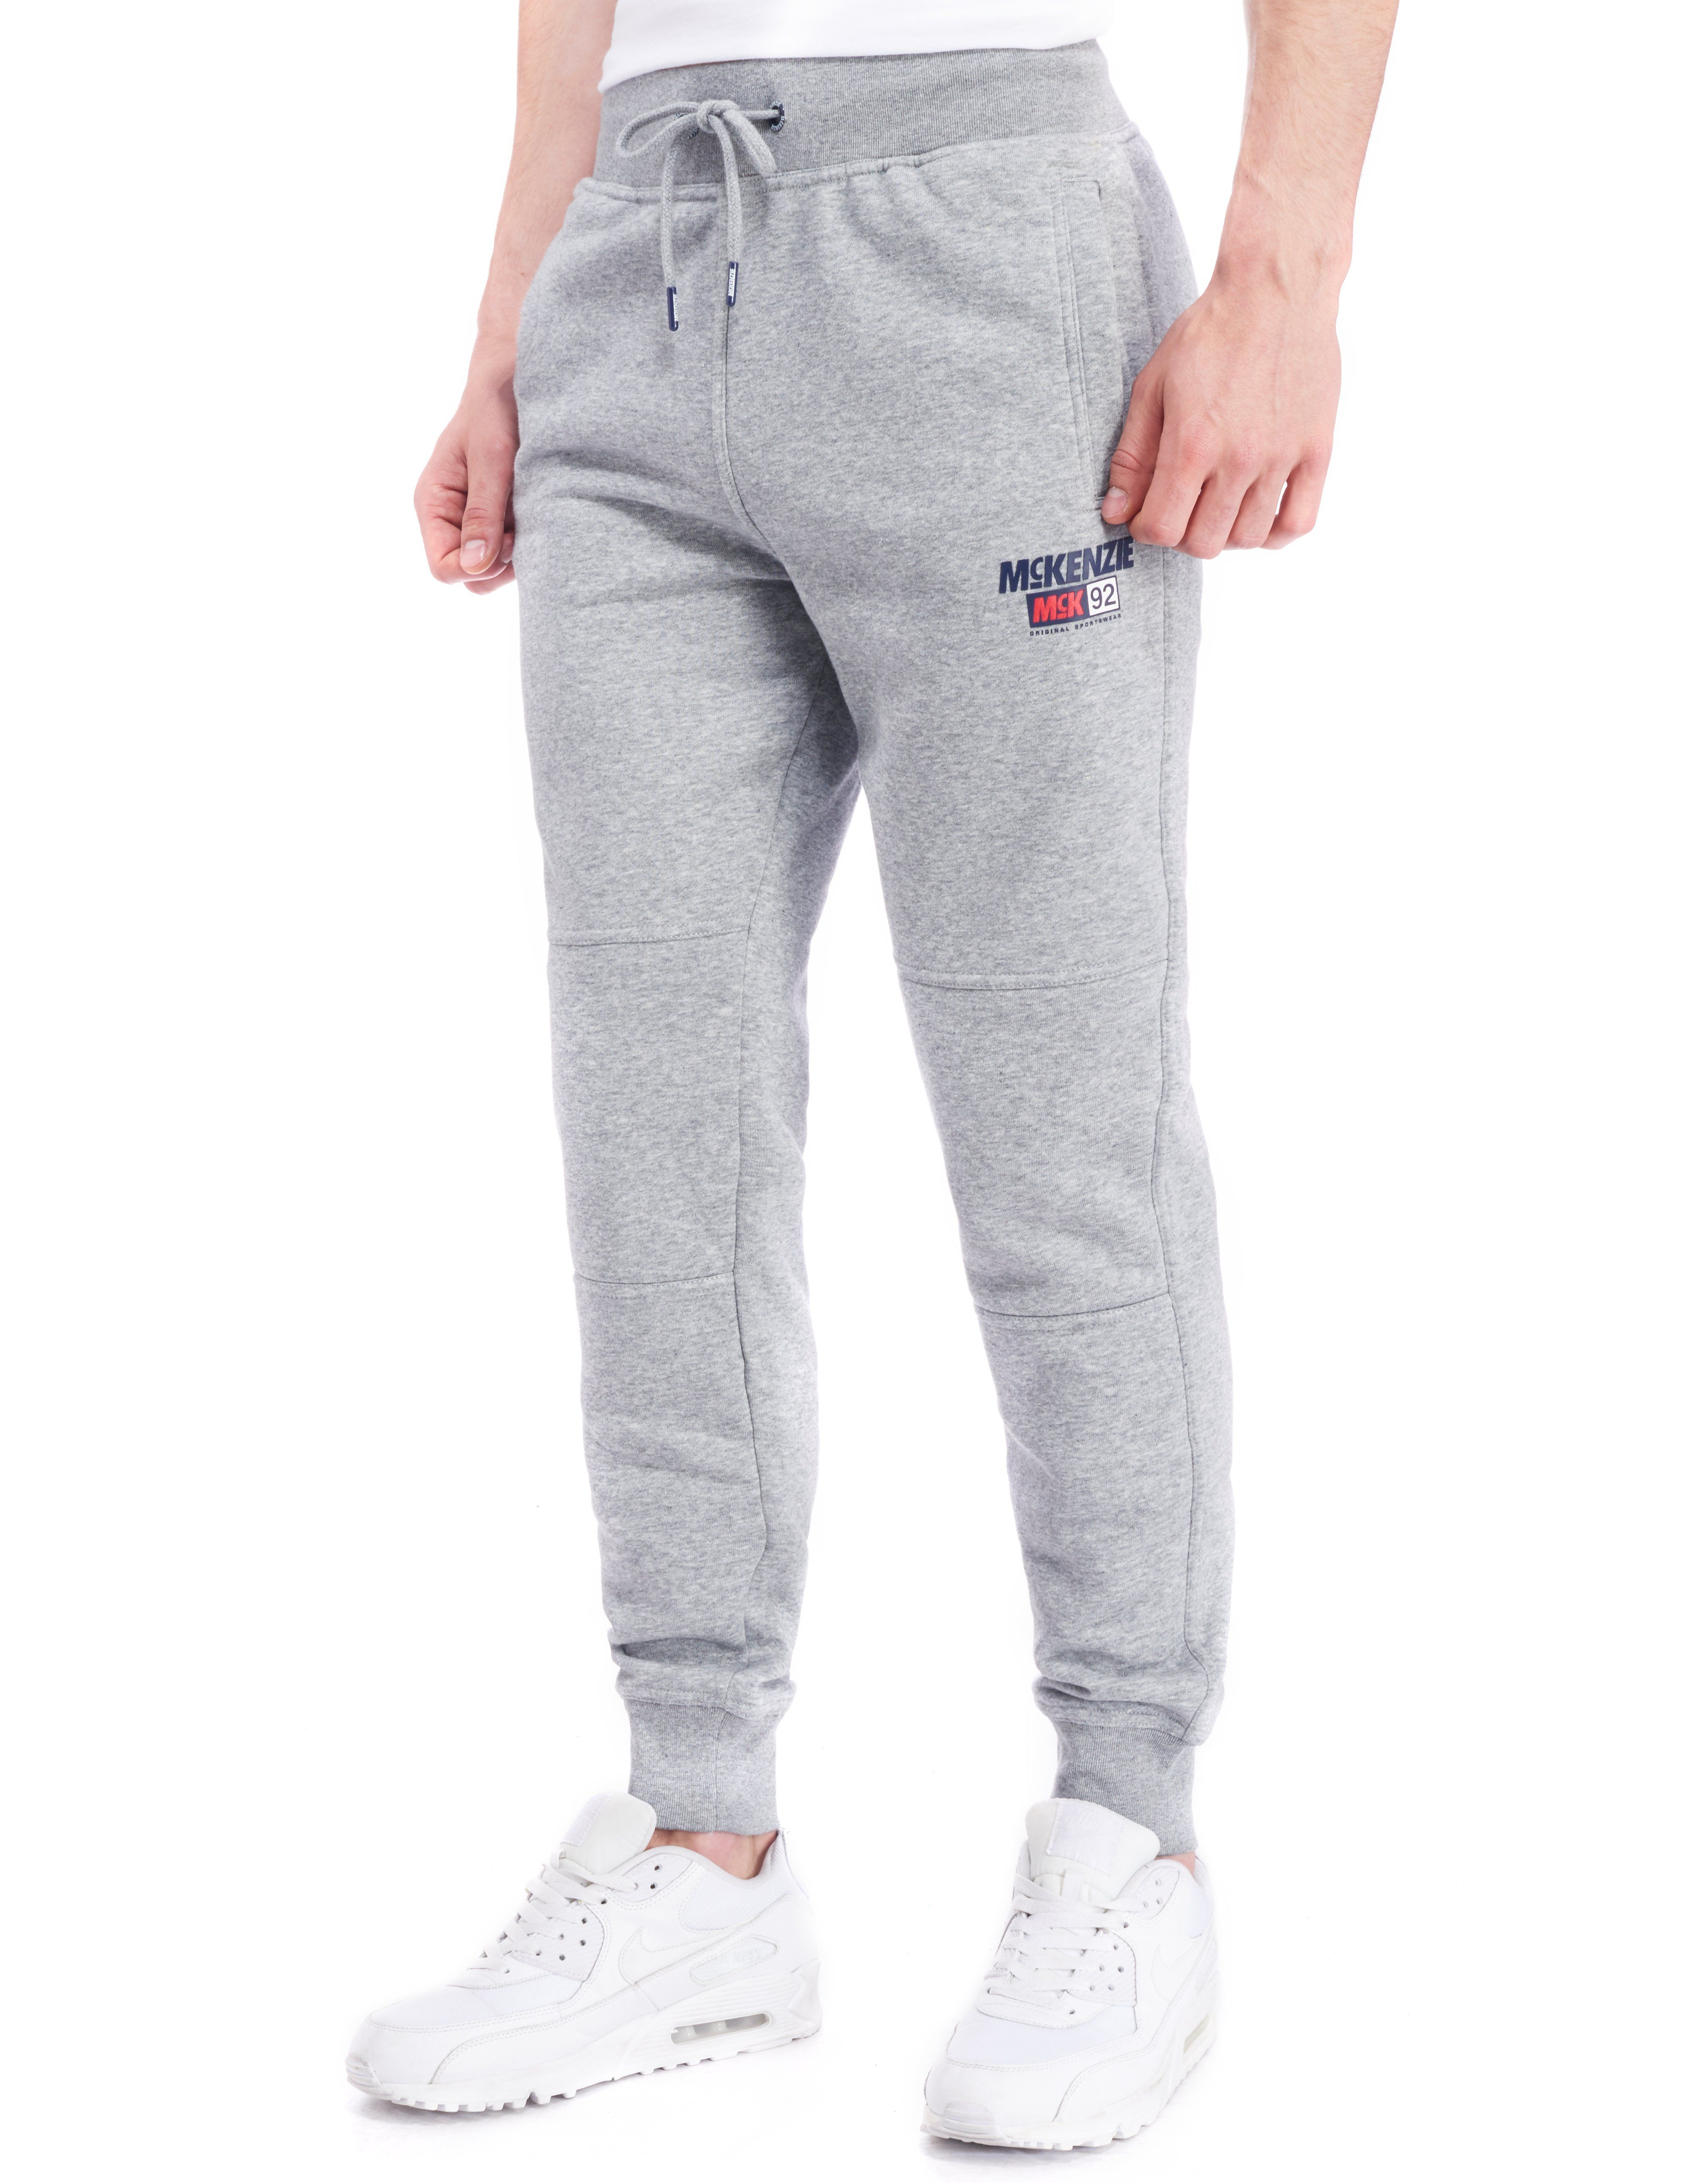 673c4c88ab McKenzie Bodine Track Pants | JD Sports on sale - jeffreygreen.com.au